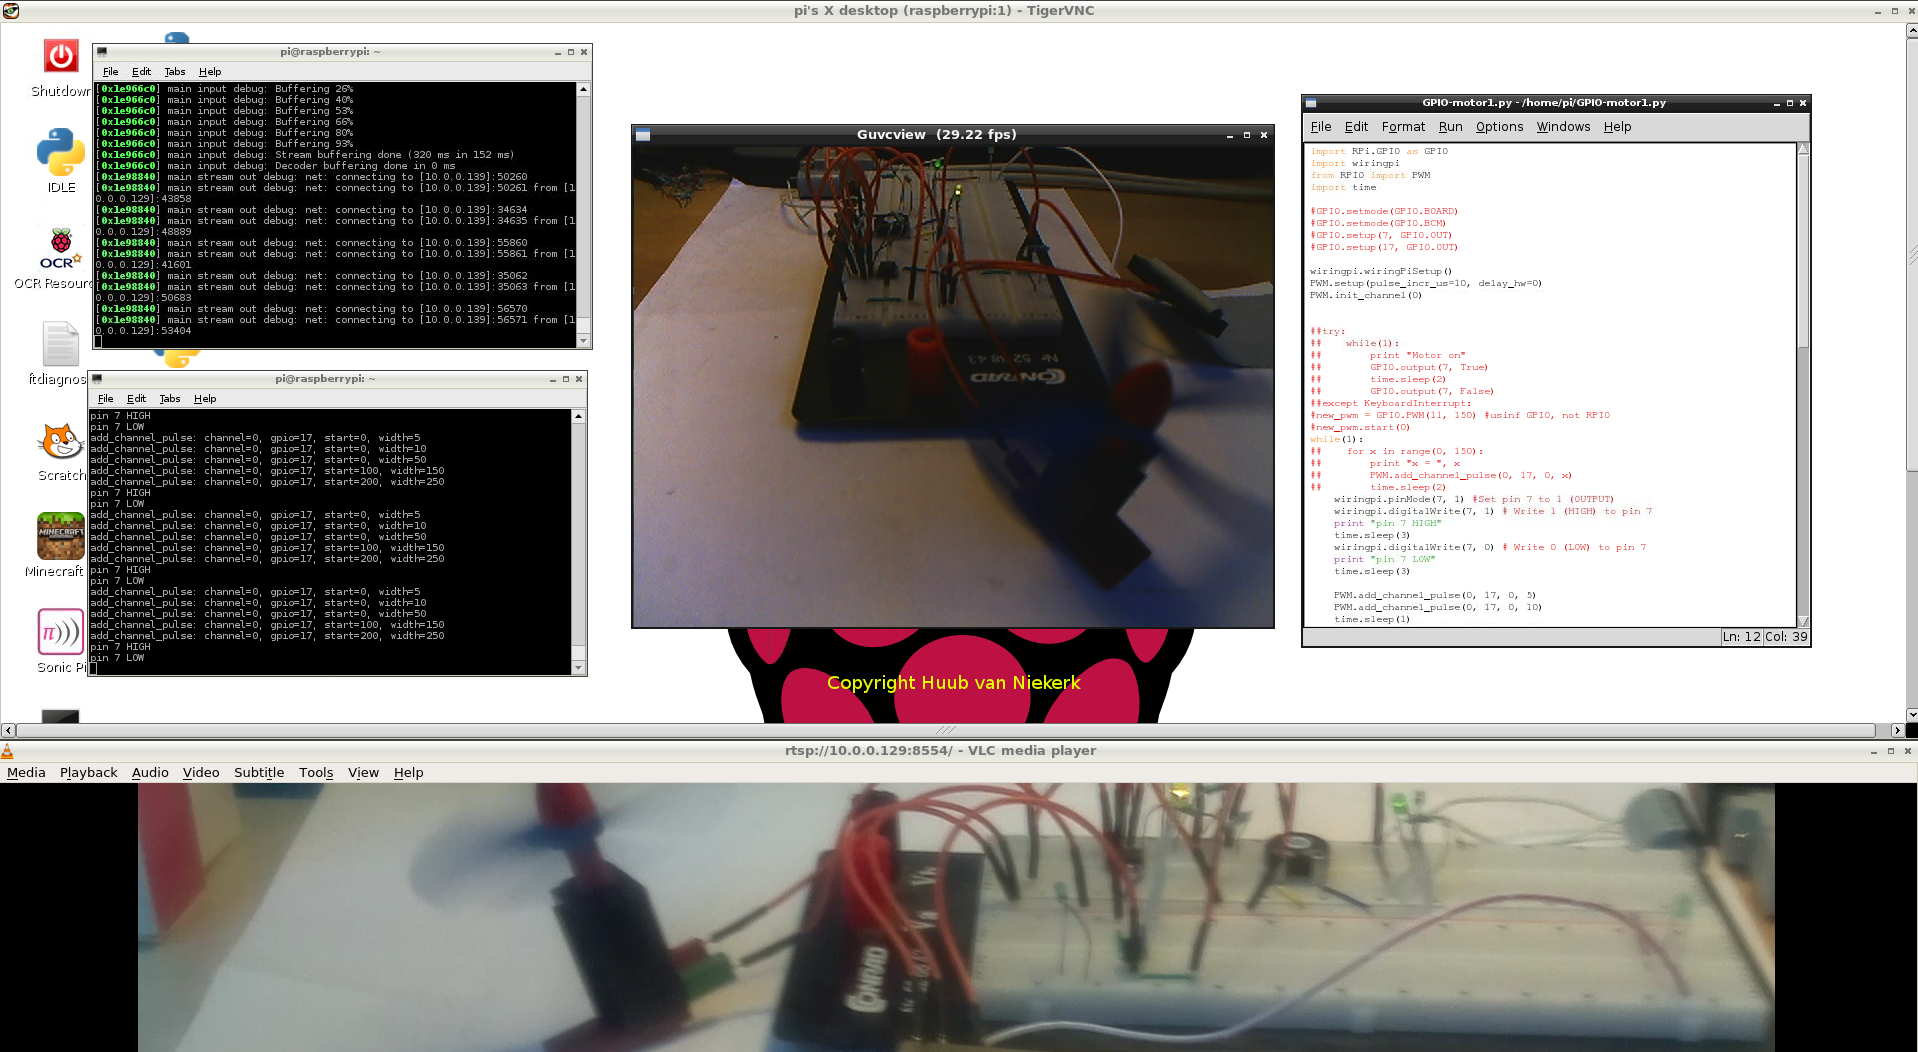 Raspberrypi 1 Import Wiringpi Error 12 May Servo Cameras Hardware Setup Click The Image To Watch Video See Also Blog